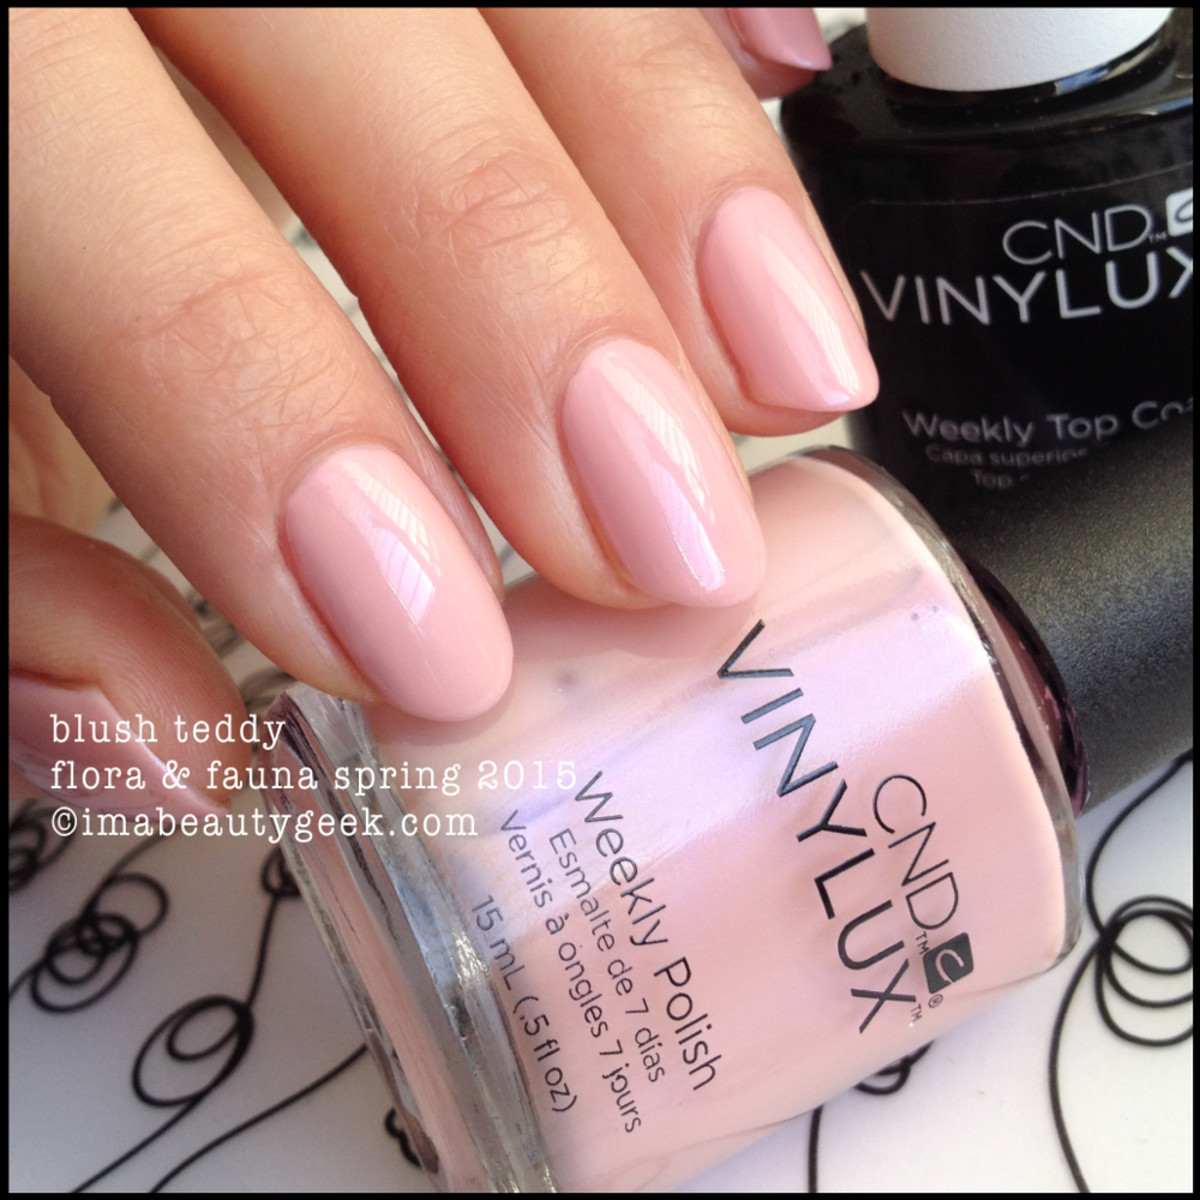 CND Vinylux Blush Teddy Flora and Fauna Spring 2015